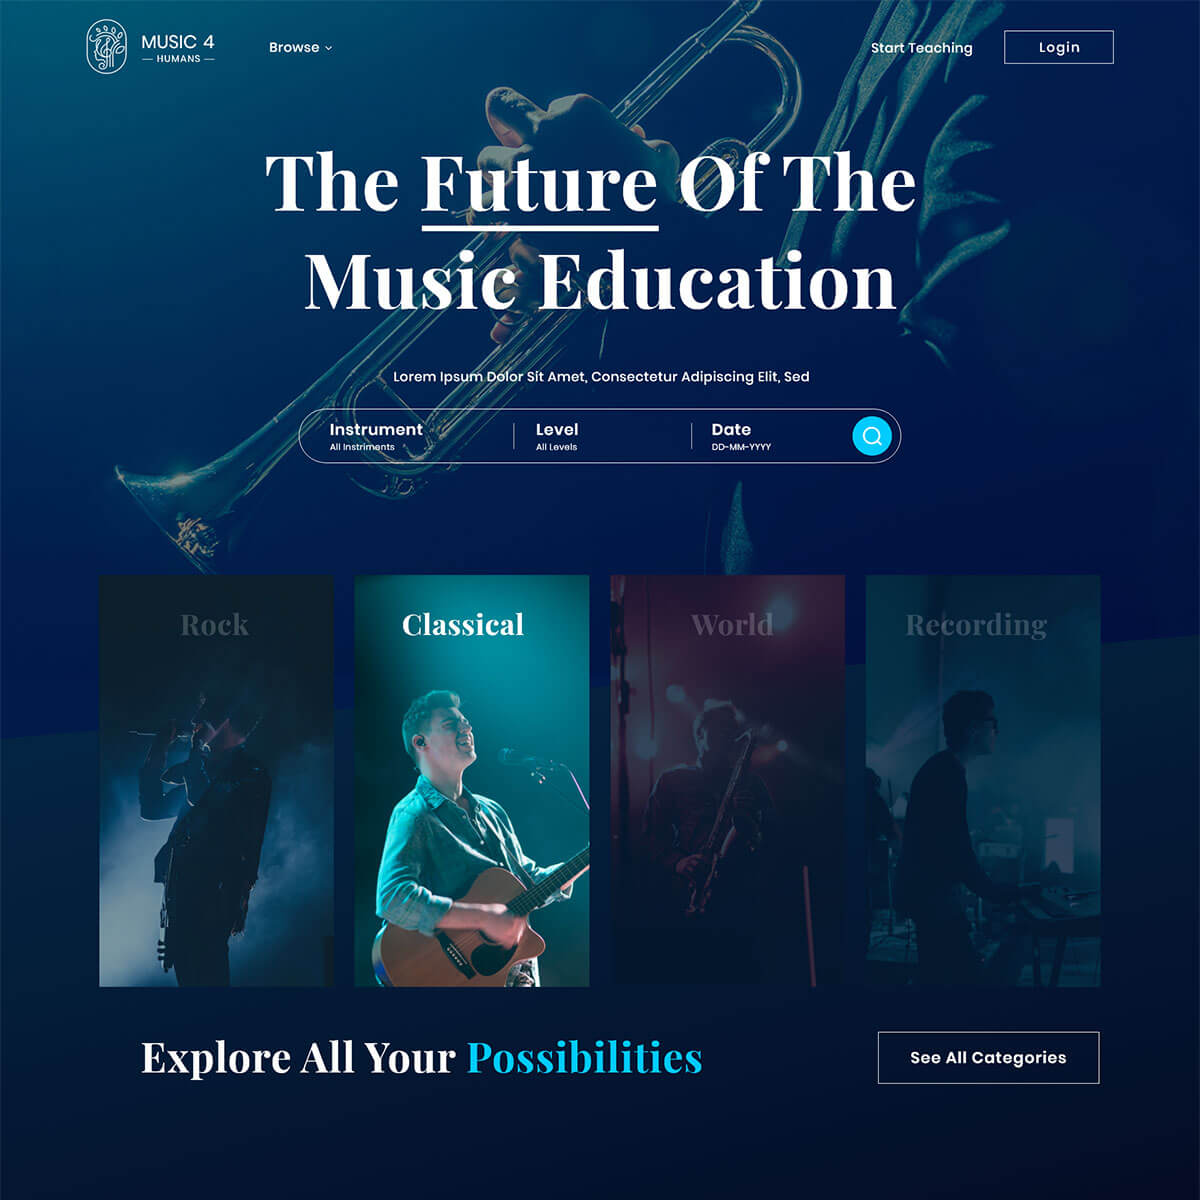 Music LMS Website for Music 4 Humans